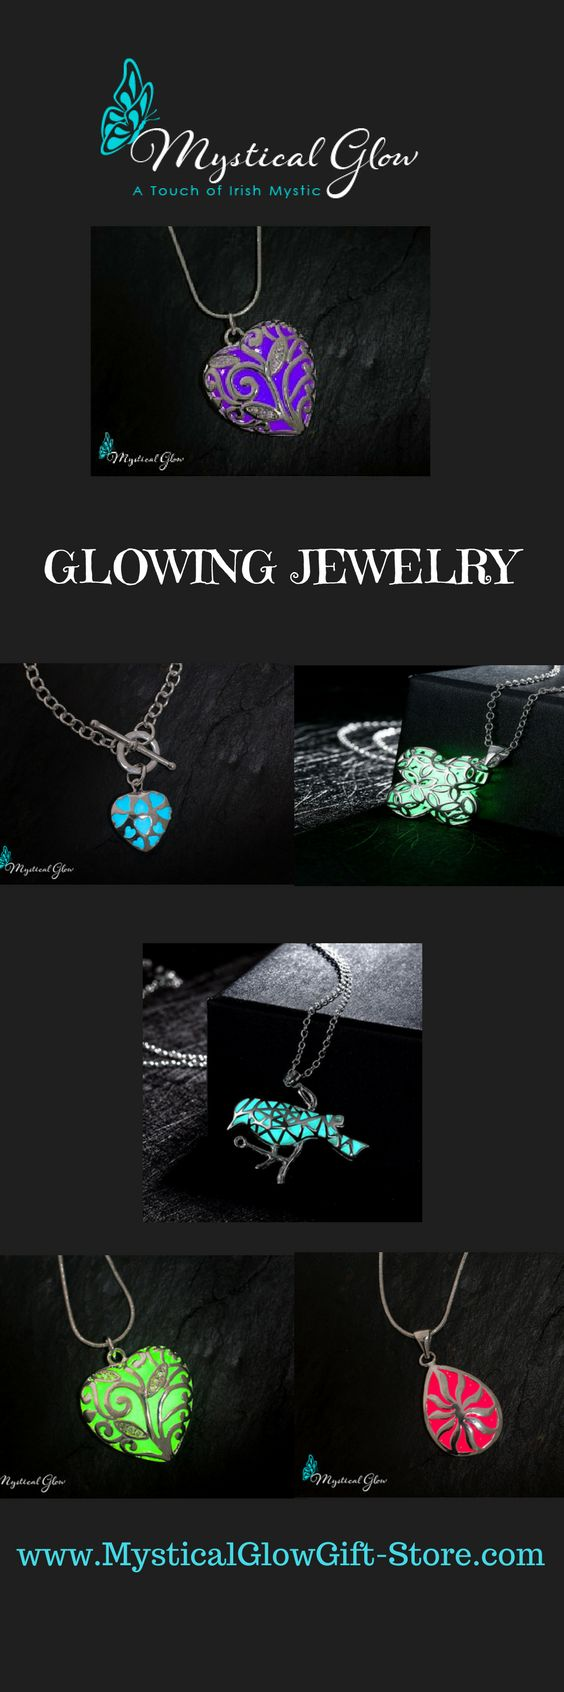 Glowing Jewelry, whats not to love?   More styles available at www.mysticalglowgiftstore.com #jewelry #jewellery #necklace #accessories #bracelet #ring #earrings #jewelrygram #silver #handmadejewelry #gold #jewels #rings #instajewelry #diamonds #bracelets #diamond #gemstone #jewelrydesigner #jewelrydesign #gems #fashionjewelry #pendant #boho #etsy #stylish #crystals #jewel #purse #bling